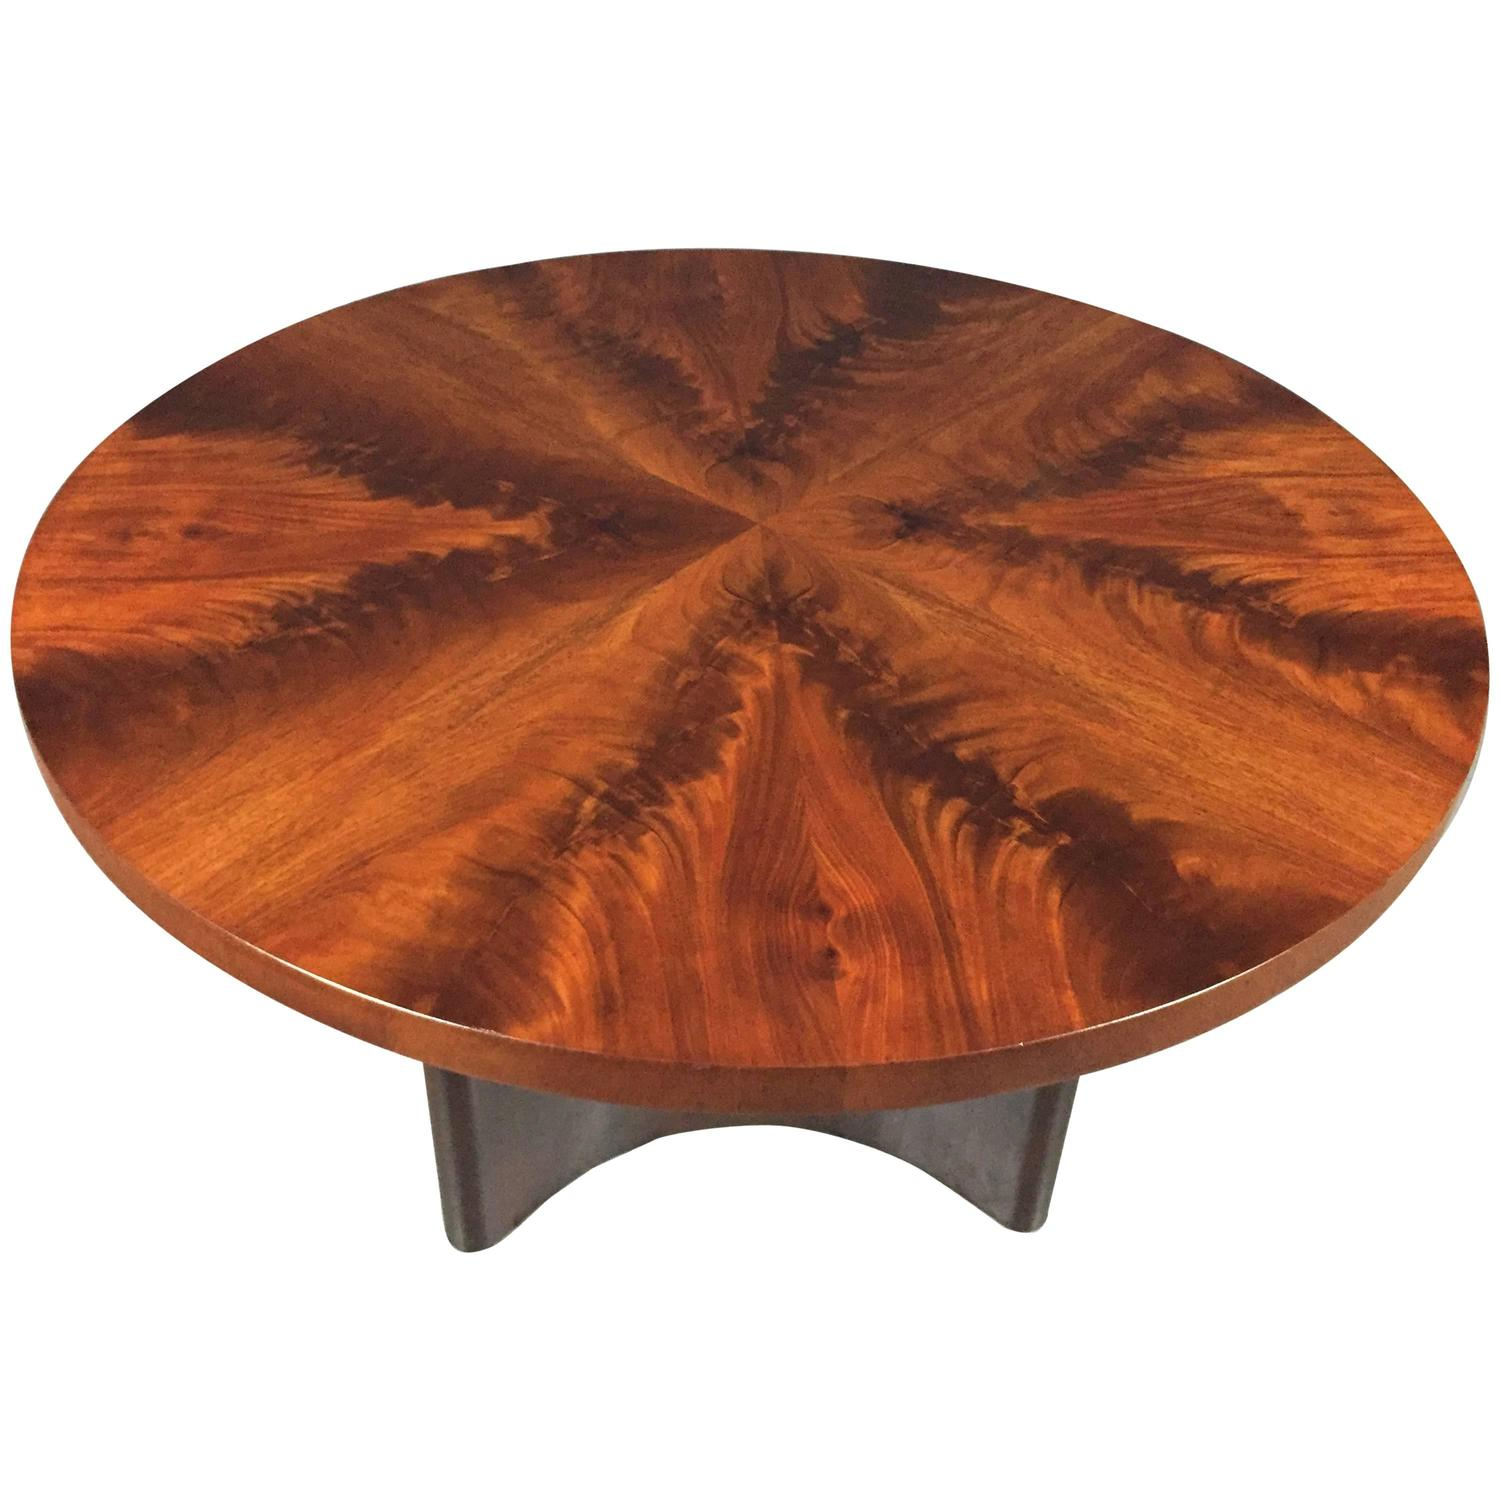 Swedish Art Deco Crotch Mahogany Coffee Table Dated 1940 at 1stdibs